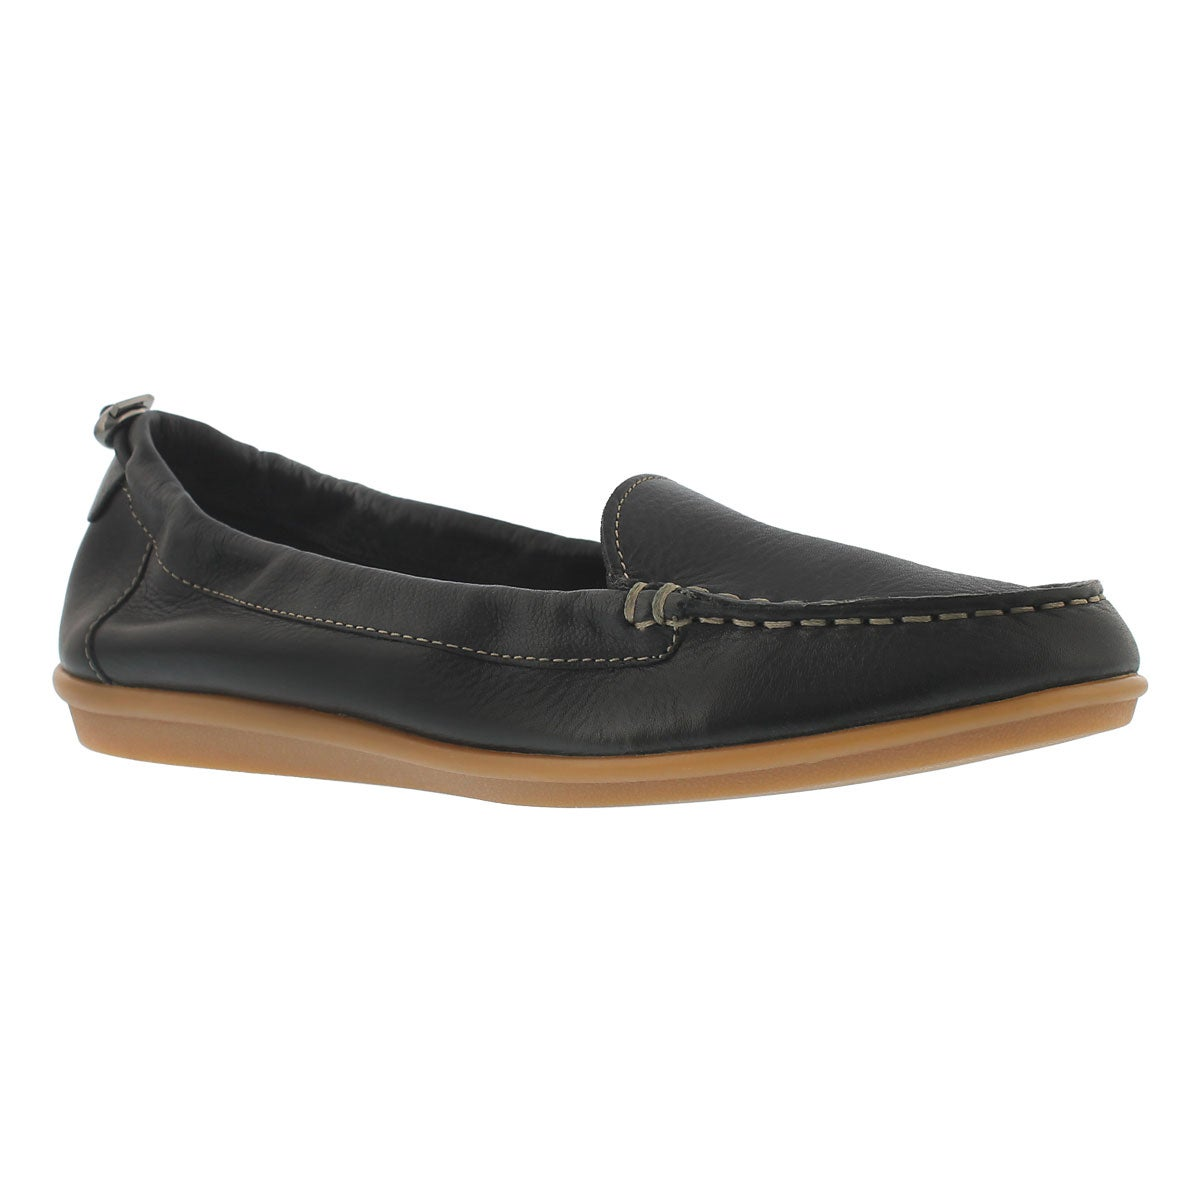 Women's ENDLESS WINK black casual slip ons